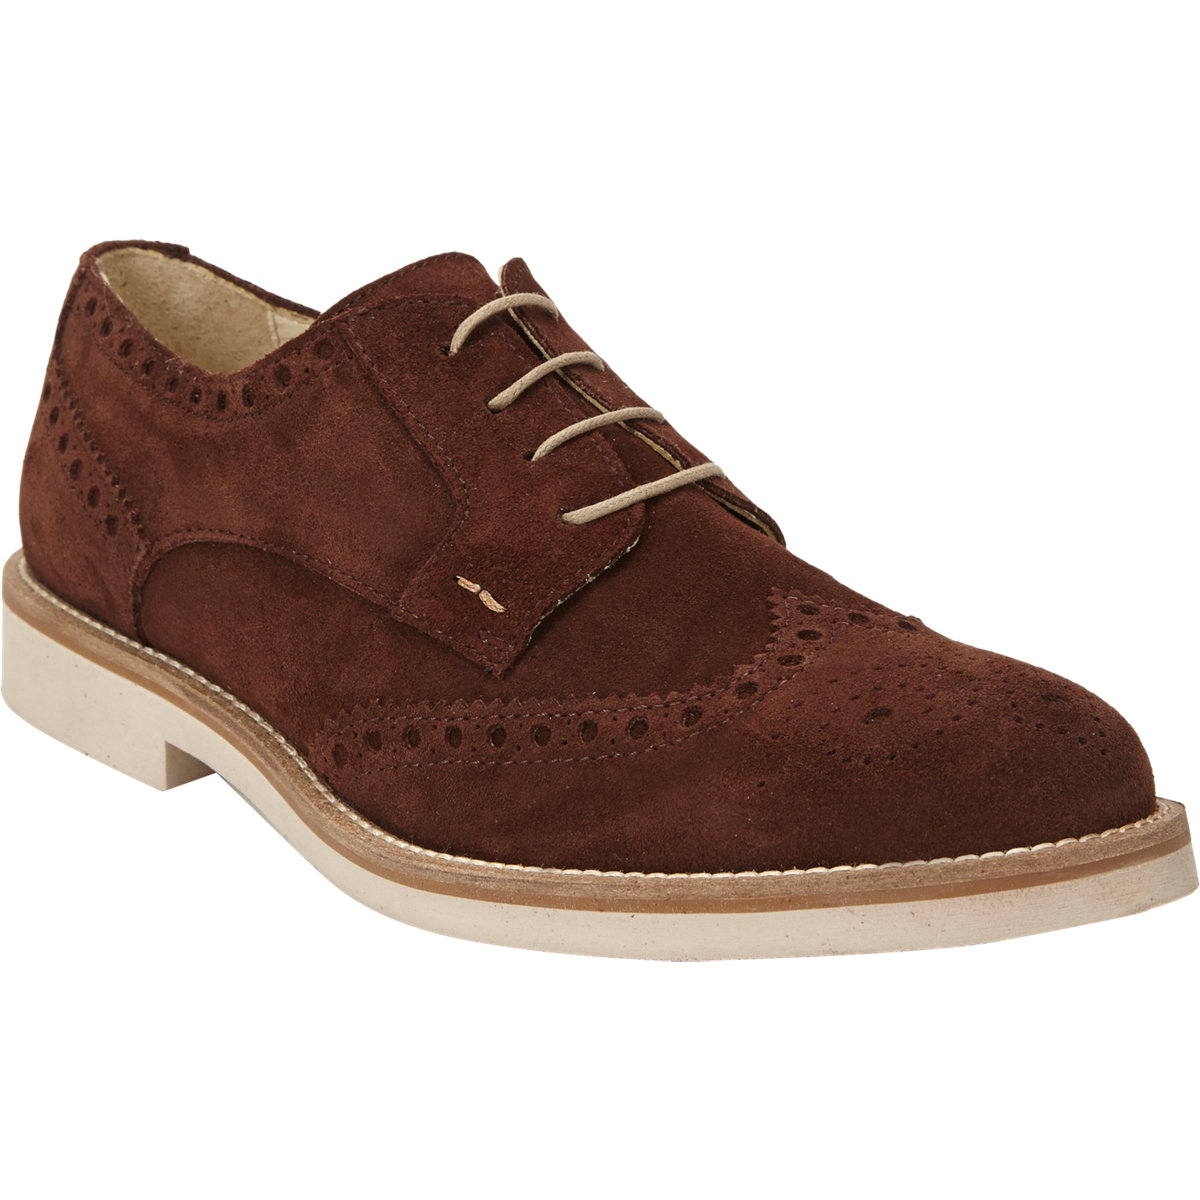 Mens Leather & Denim Wingtip Bluchers Barneys New York Free Shipping Eastbay Outlet Online Shop MUiq3DZPEJ